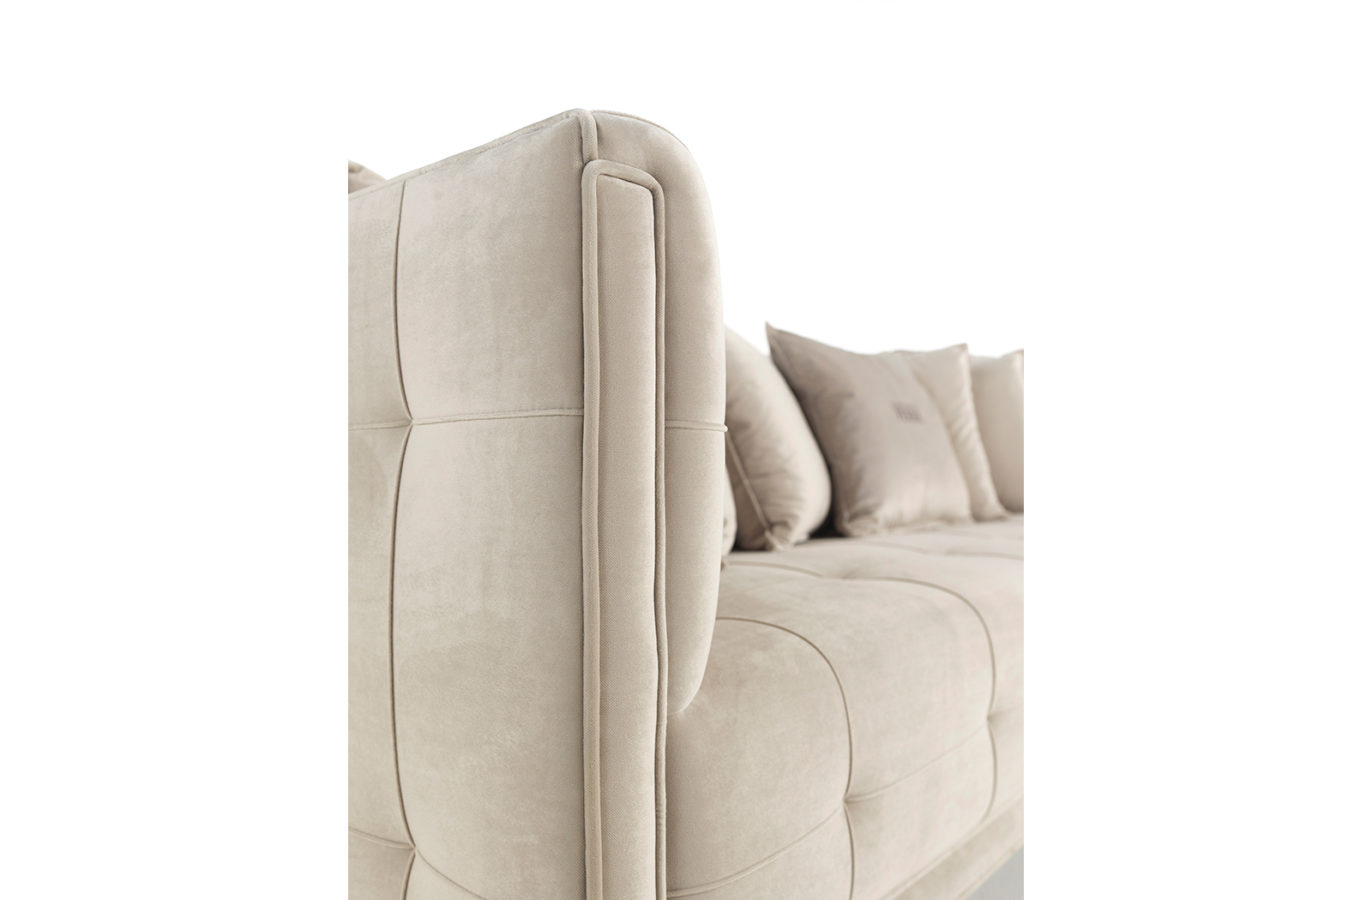 Gianfranco Ferre Home Barney Sofa 01